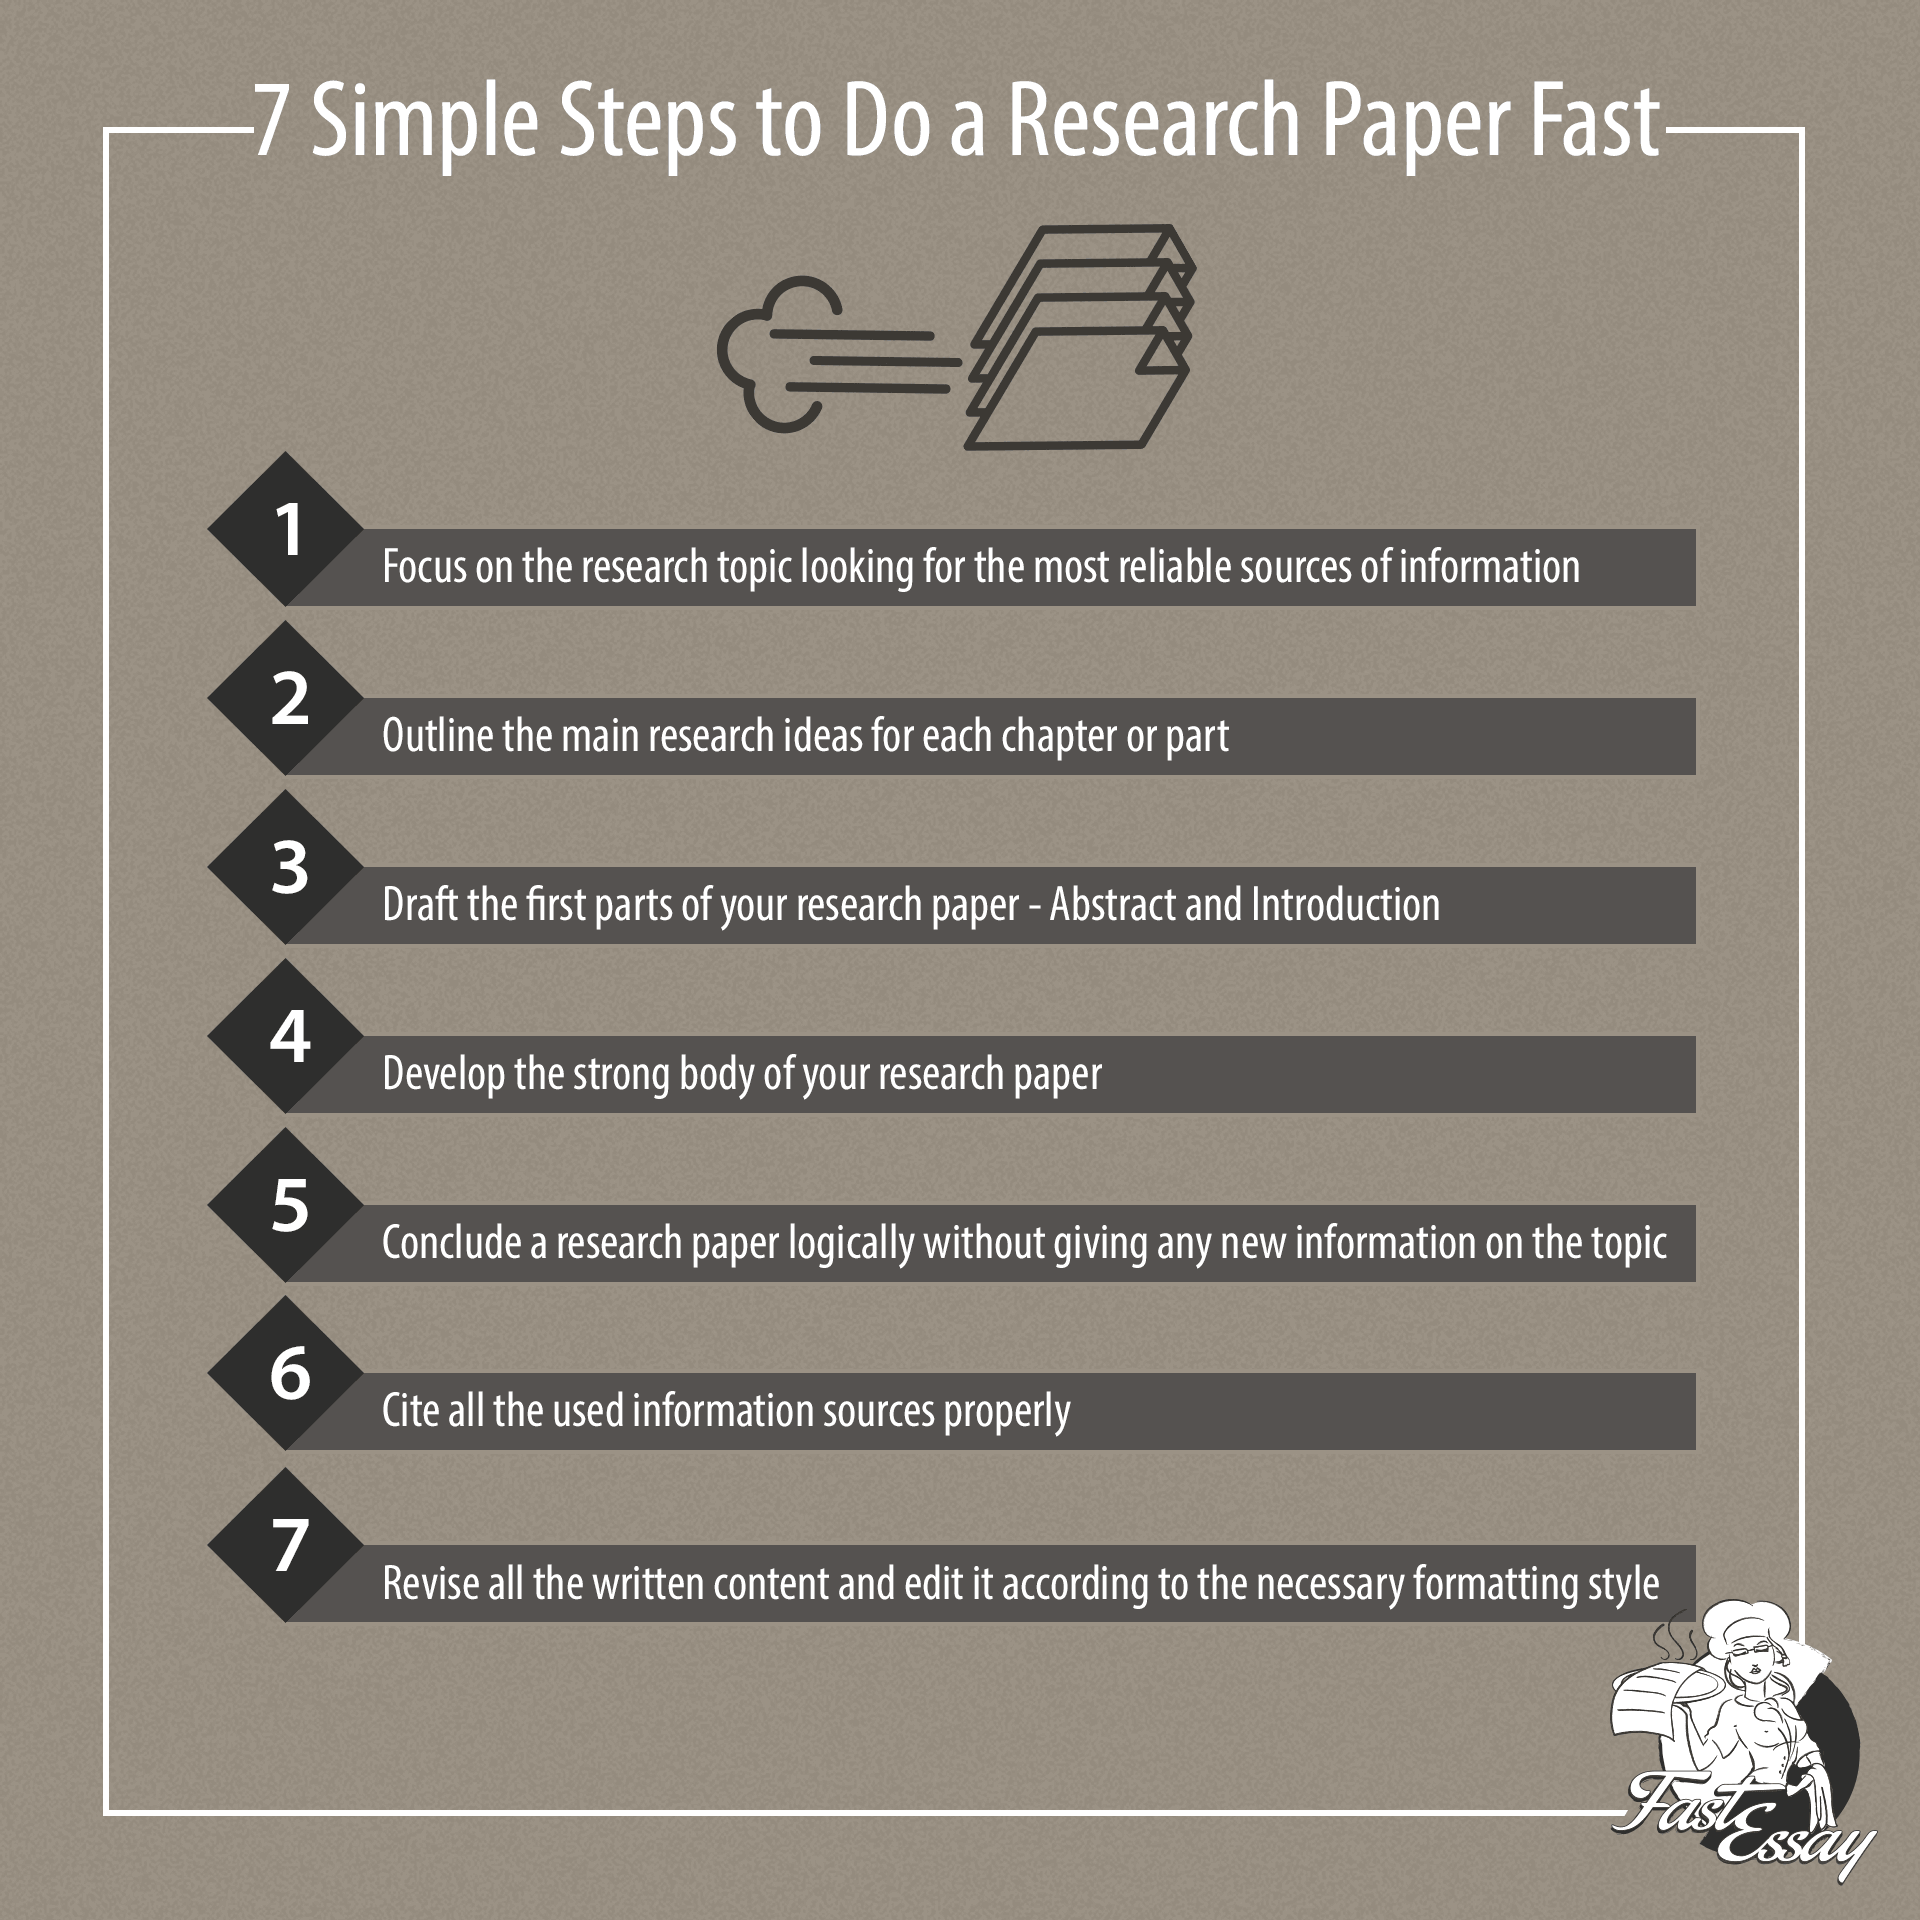 write a rapid research report